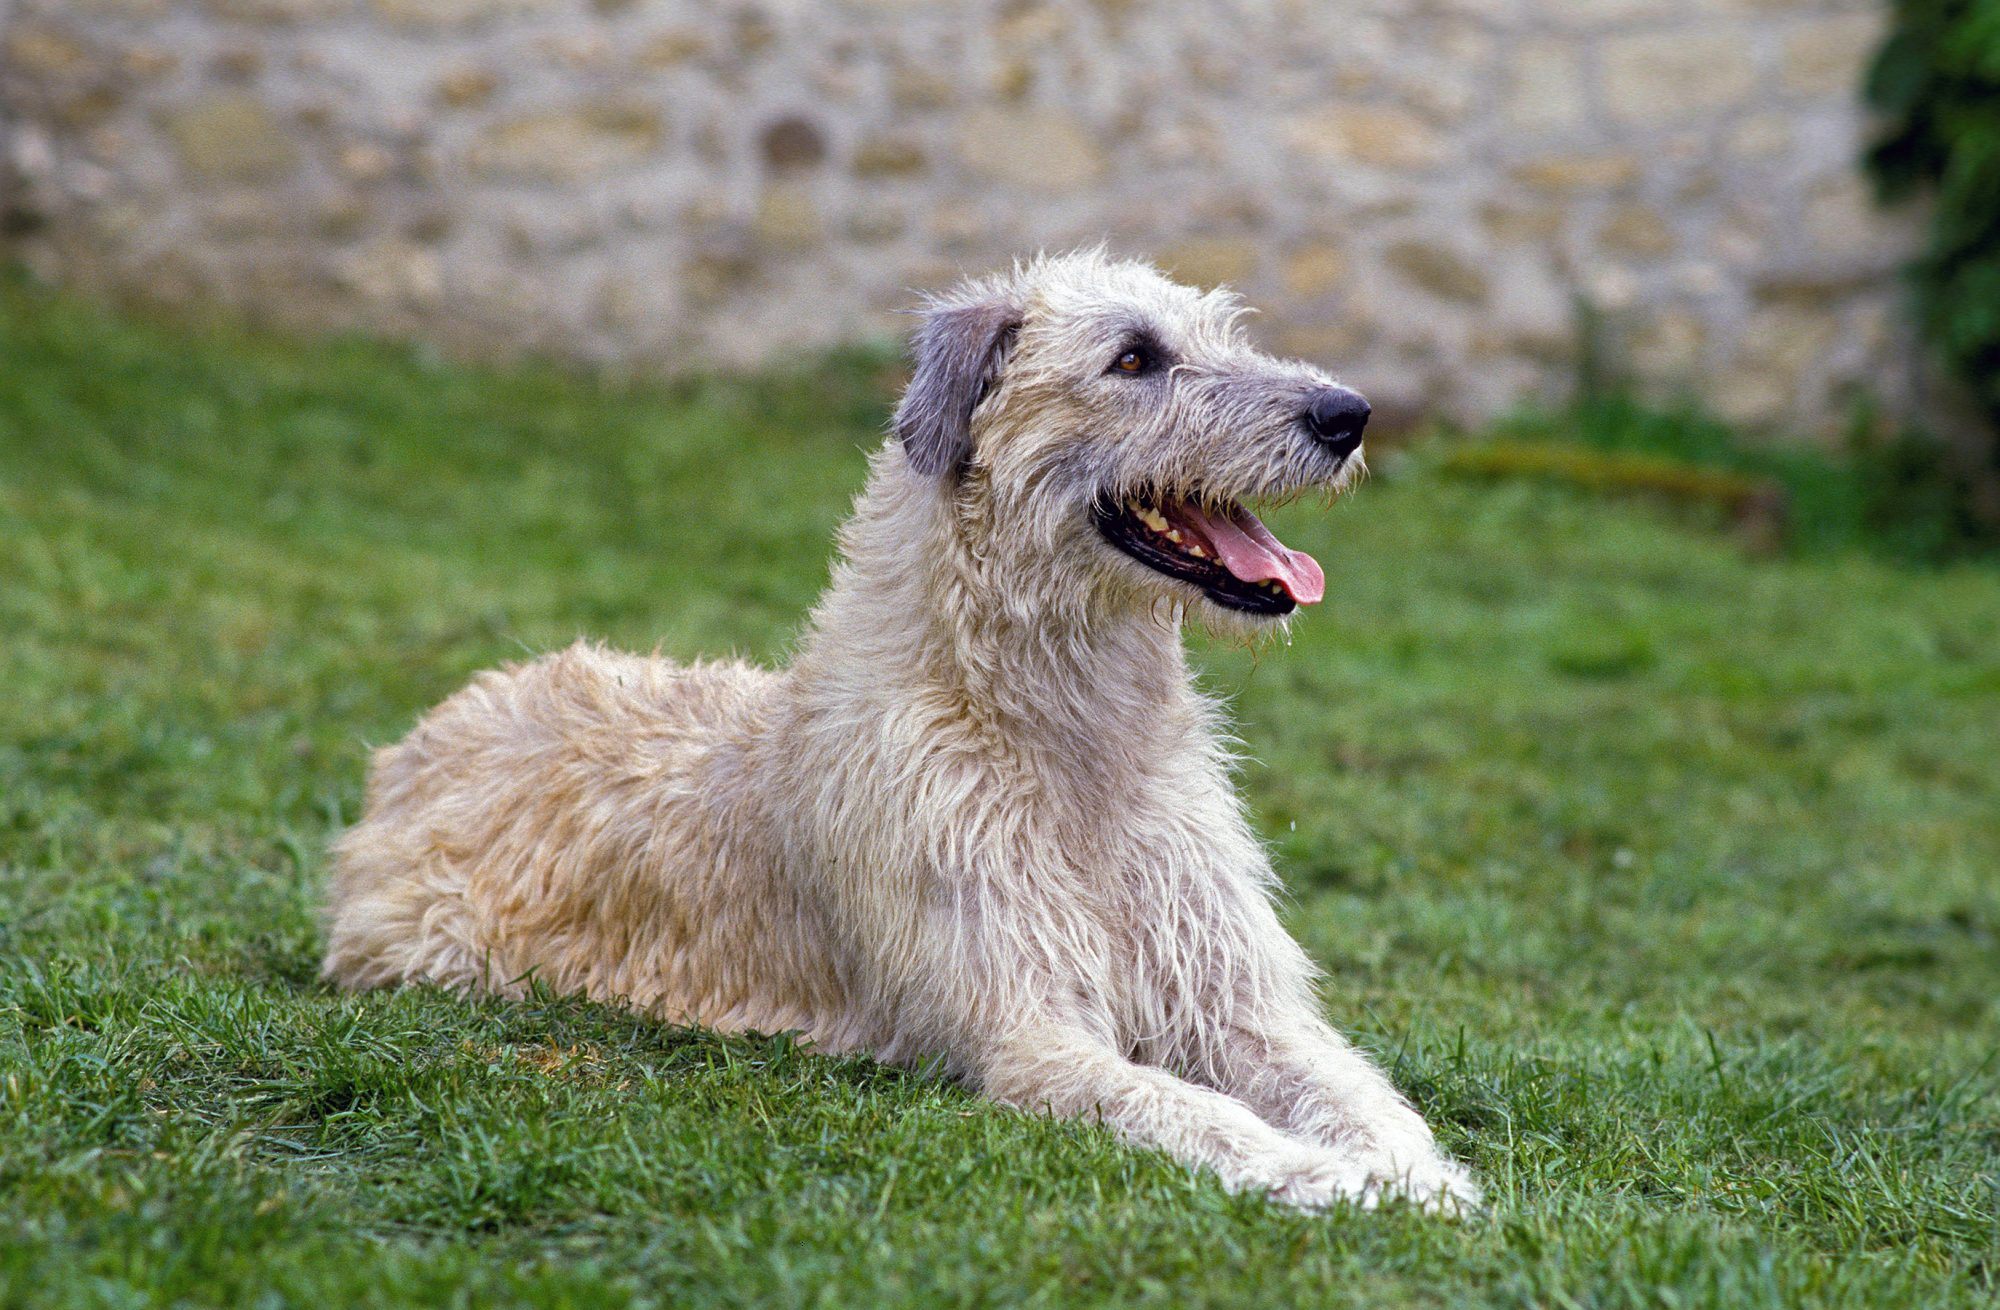 wheaten irish wolfhound lying on grass